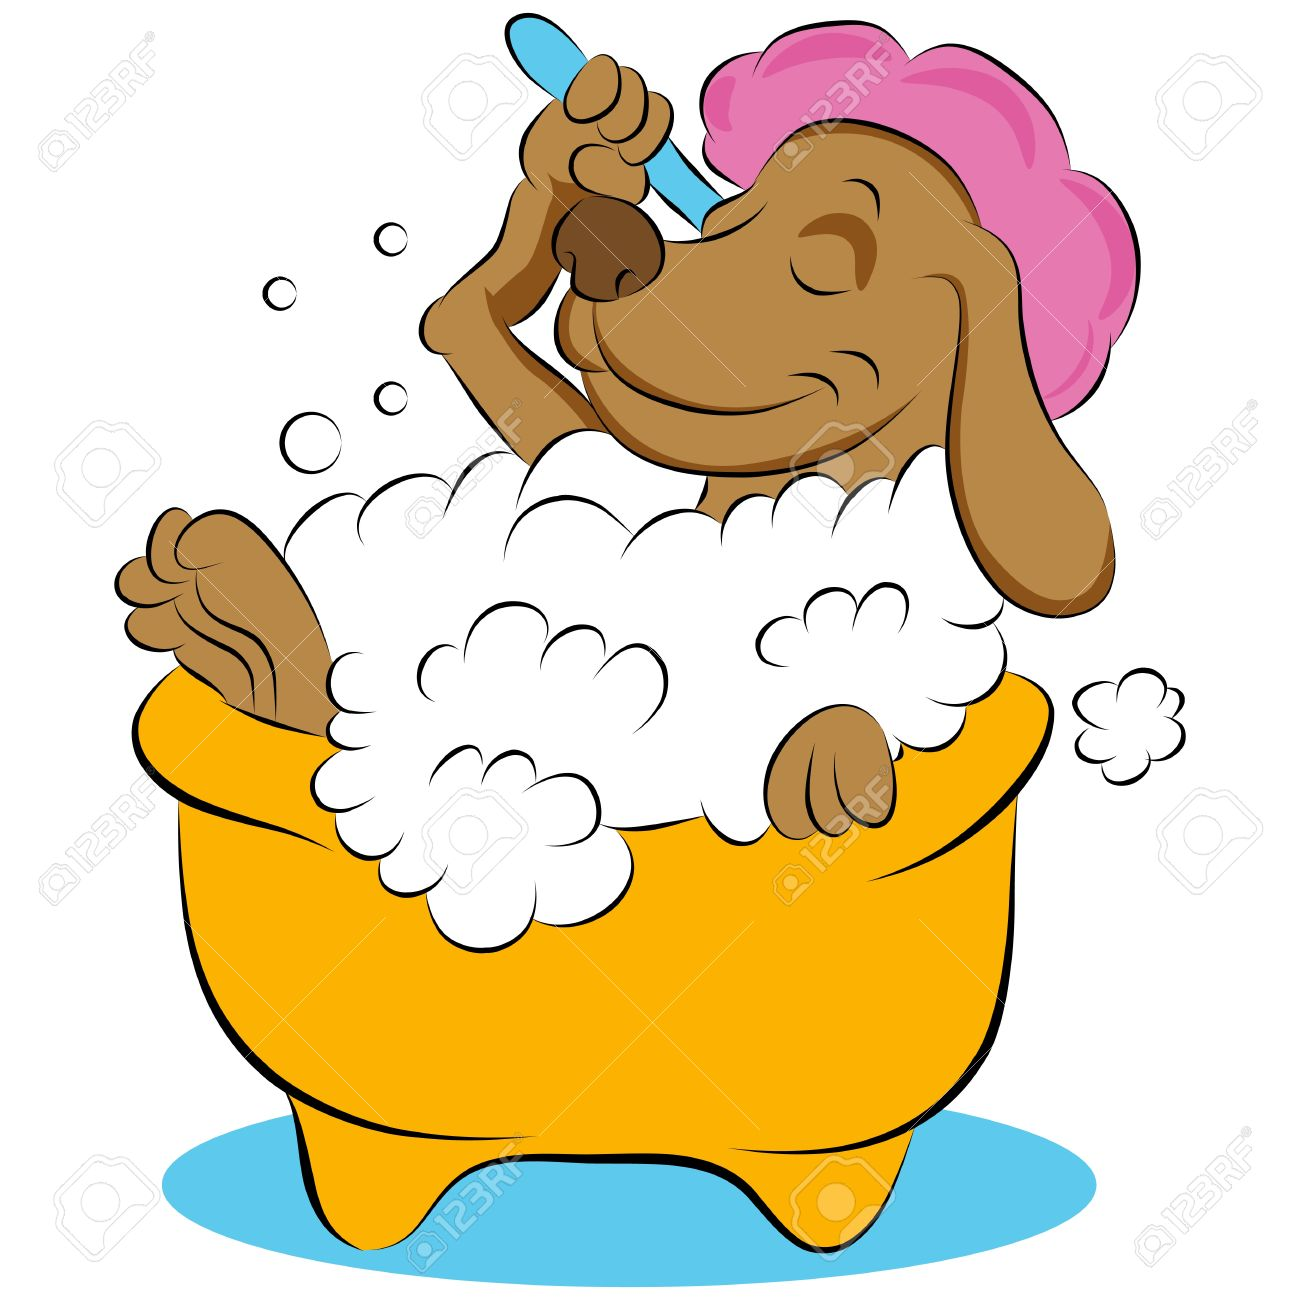 An image of a dog taking a bubble bath. Stock Vector - 12774008